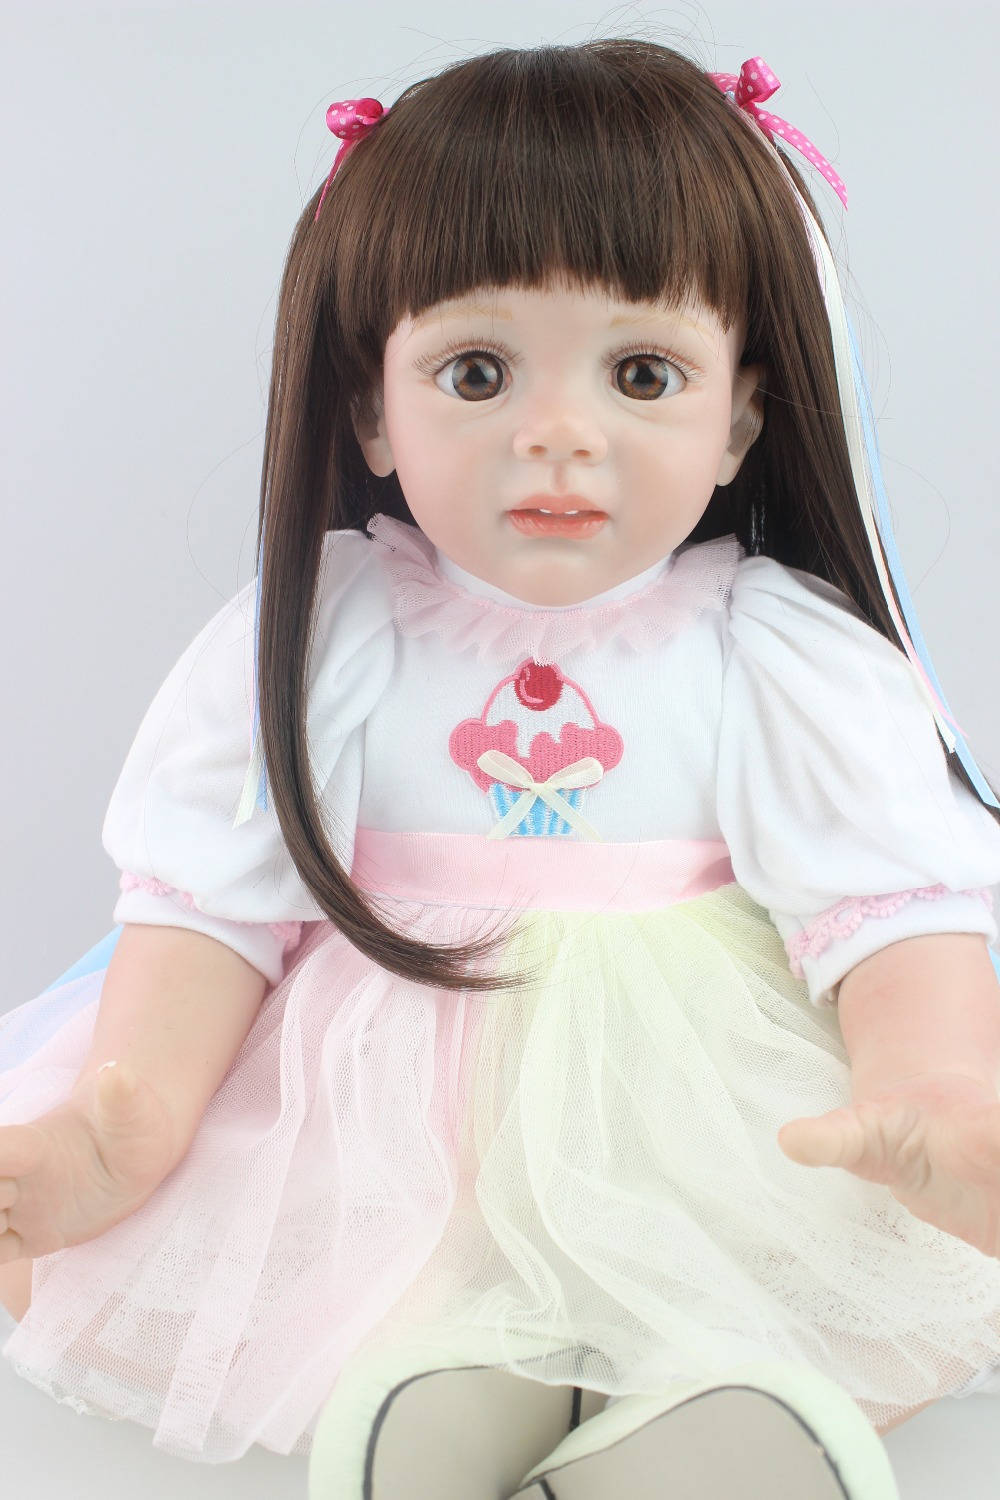 Fashion design new 24inch Reborn Toddler baby doll Fridolin lifelike sweet girl real gentle touch with long wig 28inches fashion reborn todder doll new design realistic reborn doll with long wig soft silicone vinyl real gentle touch